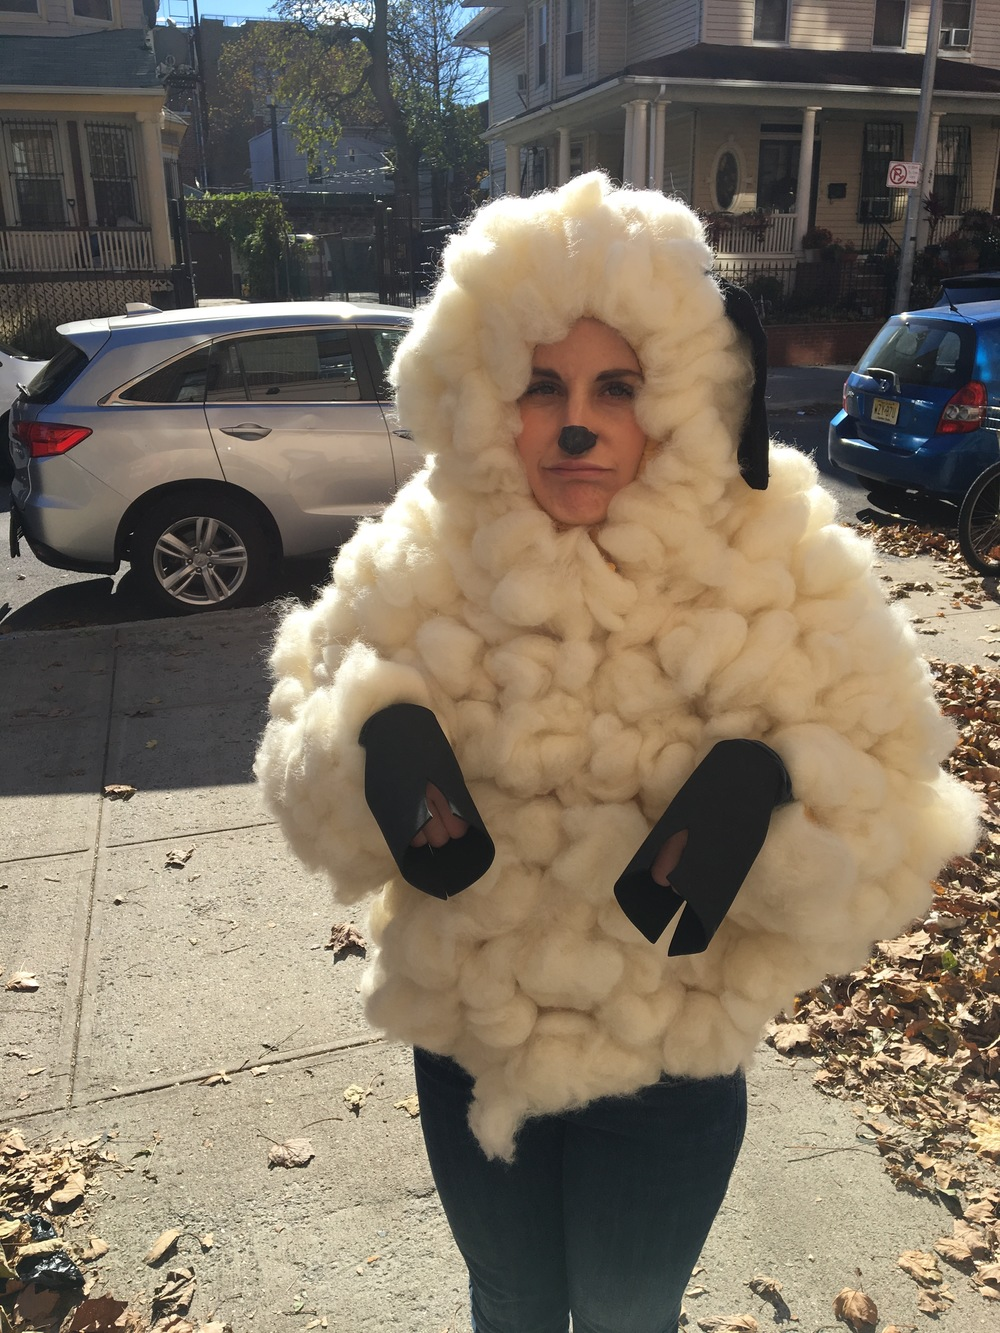 I'm a sheep for some videos